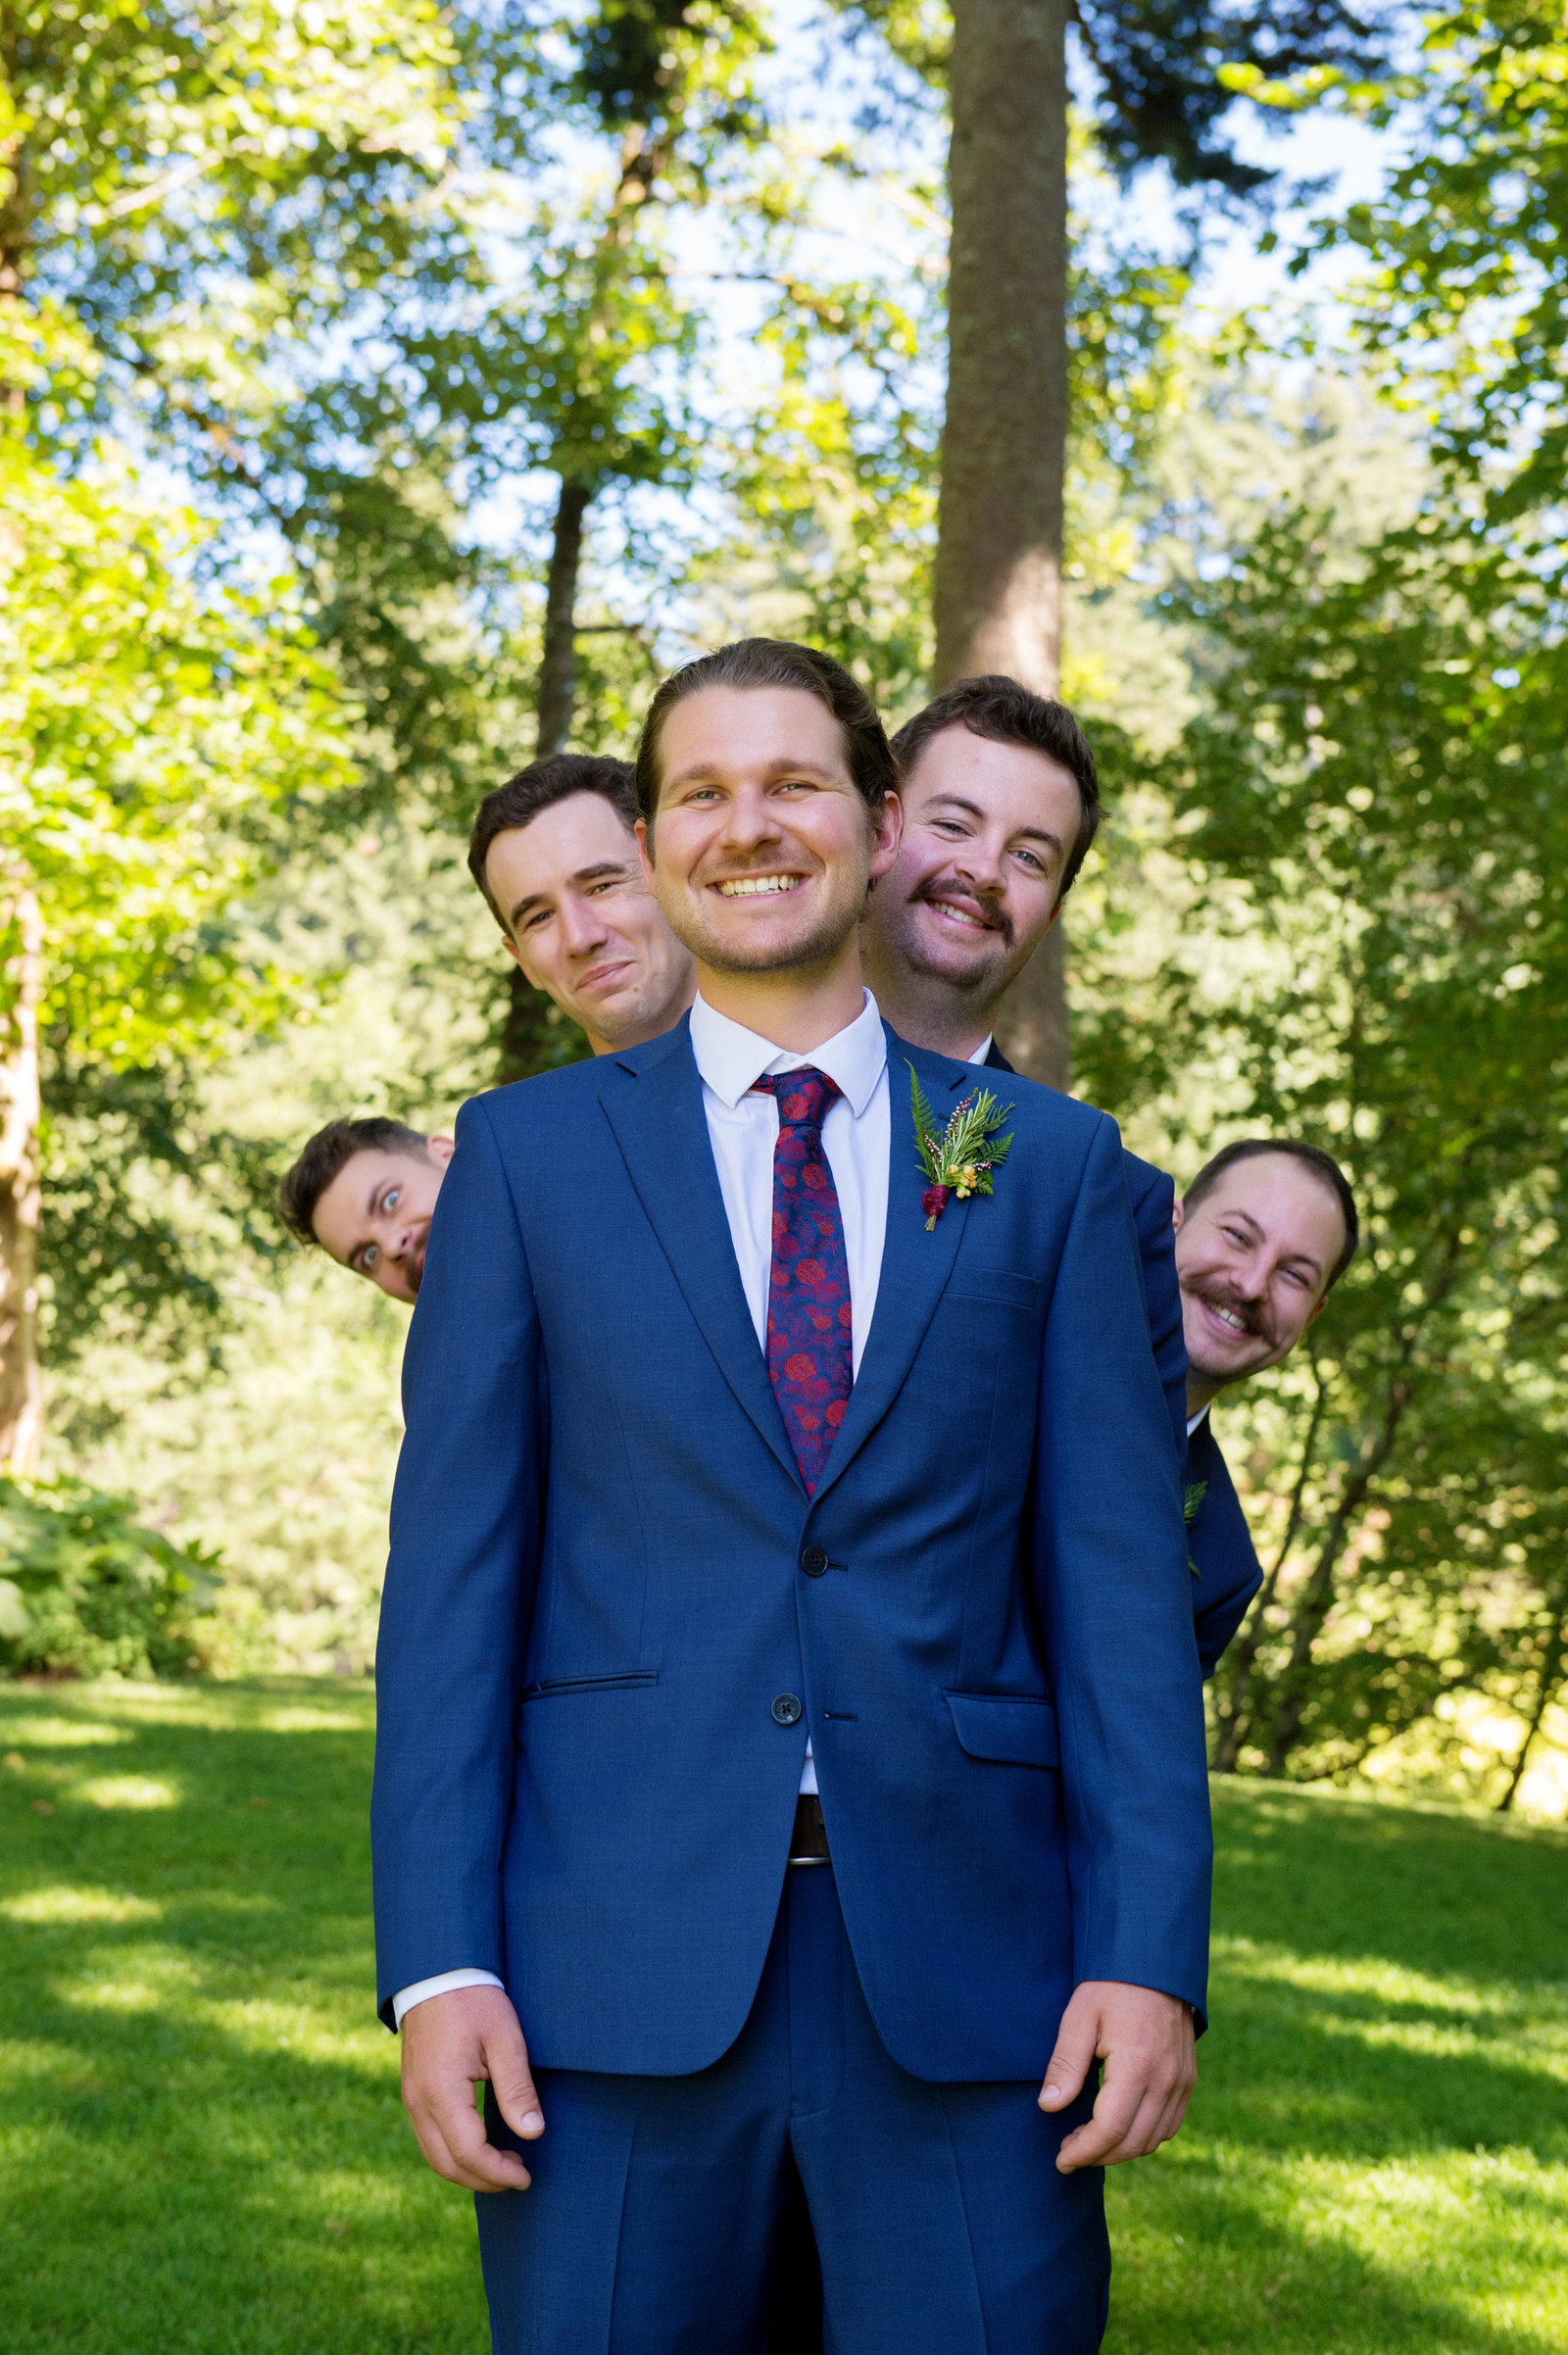 funny groomsmen peek out from behind the groom